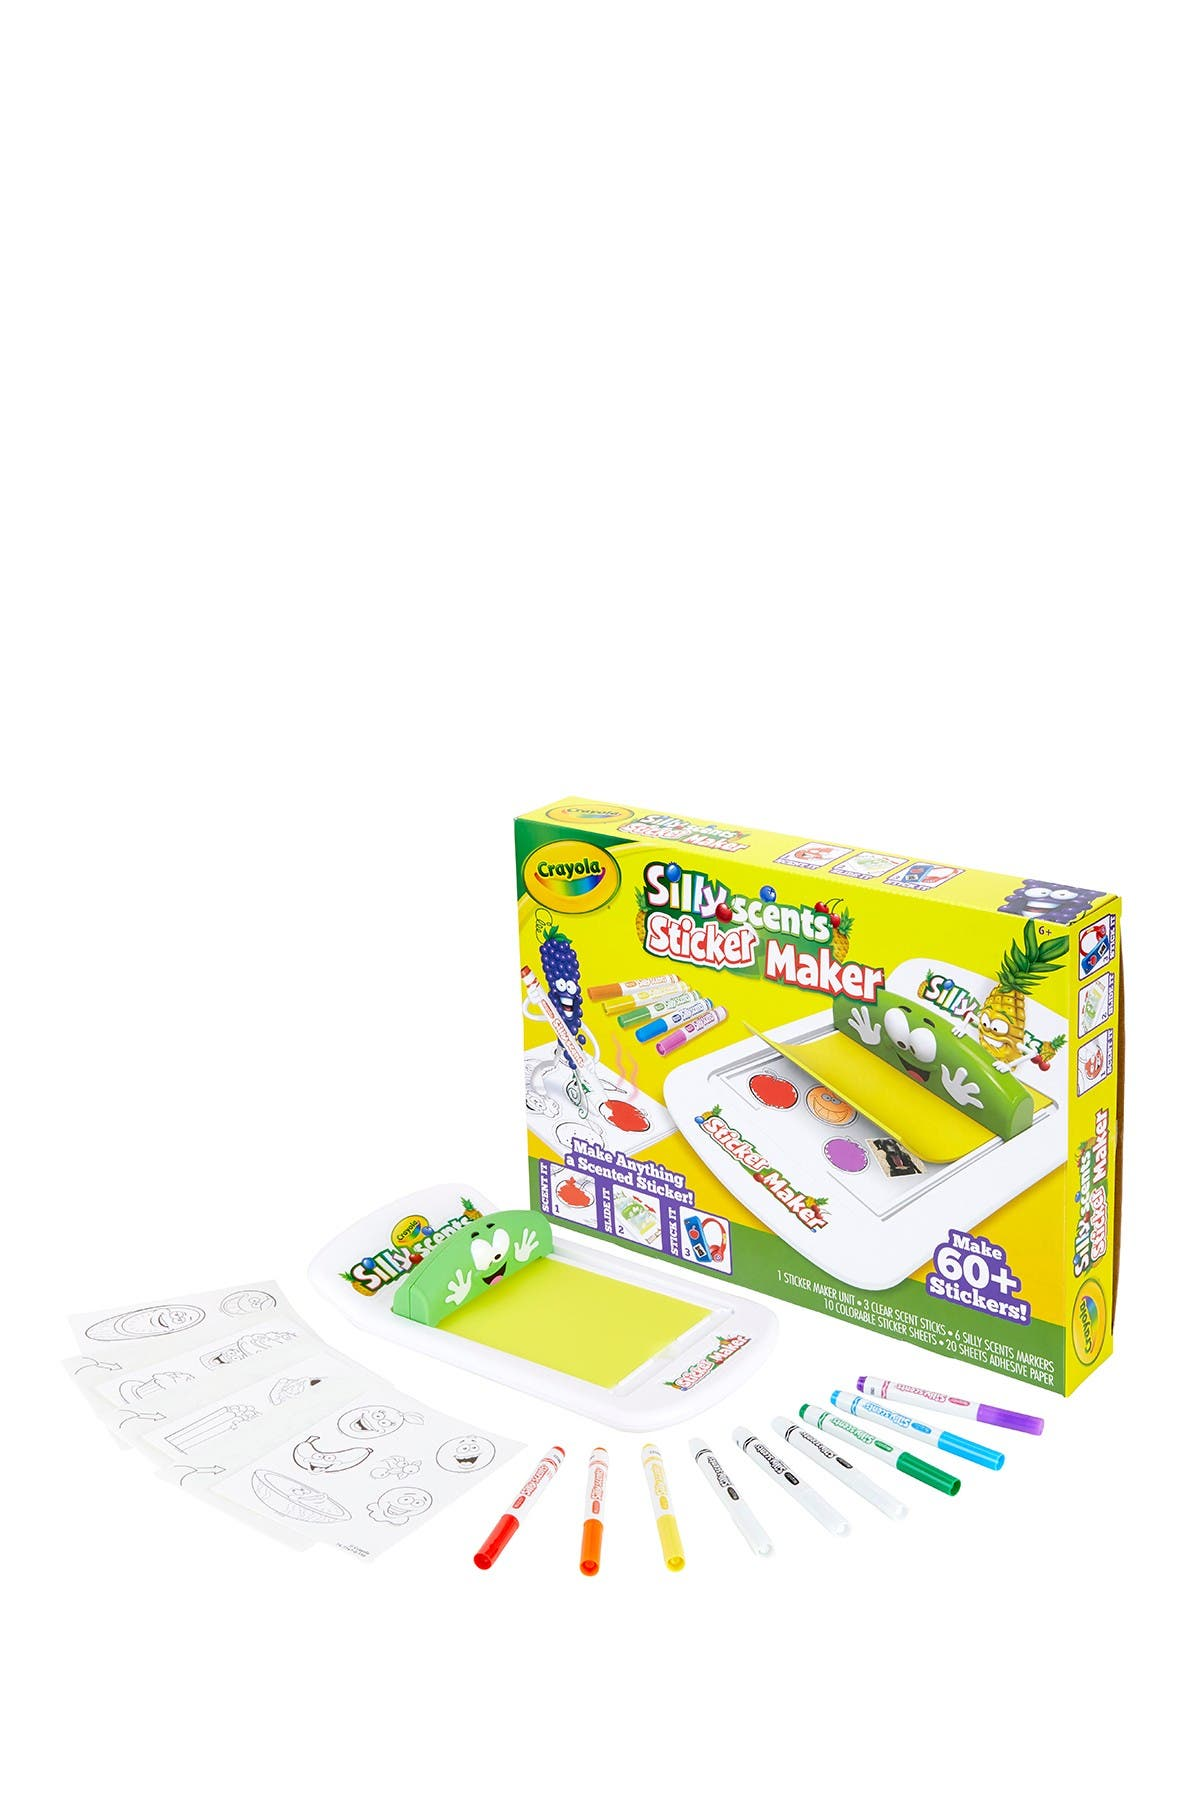 Image of Crayola Silly Scents Sticker Maker